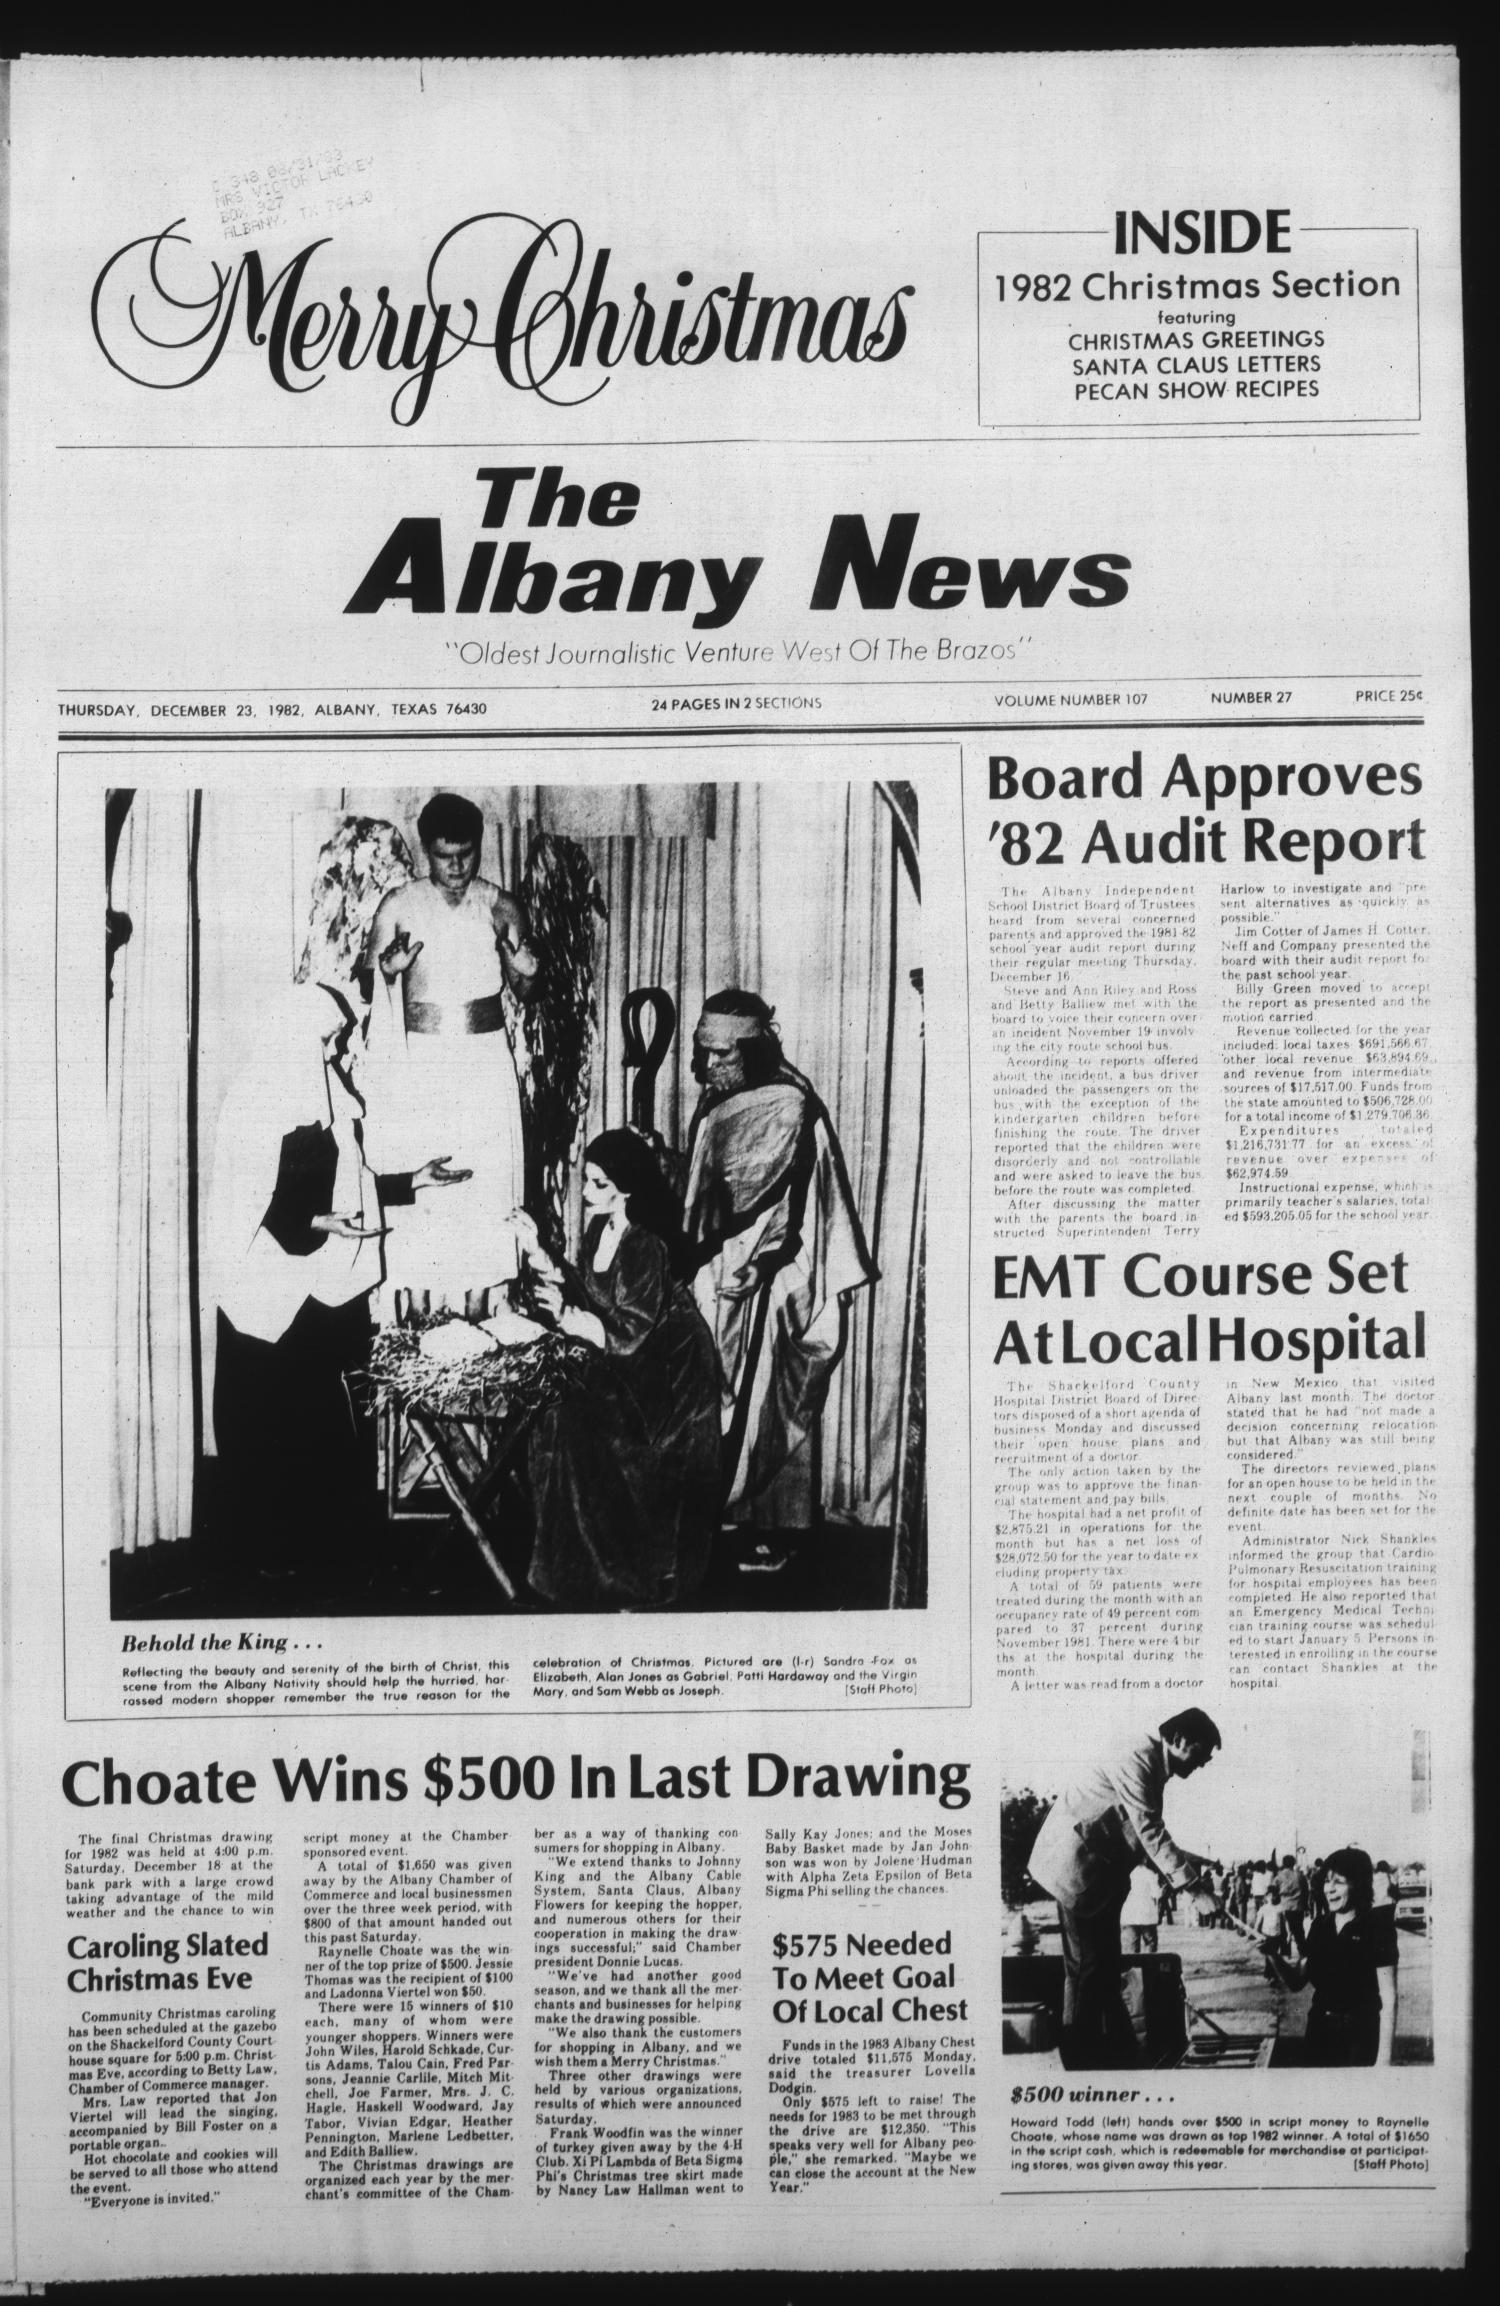 The Albany News (Albany, Tex.), Vol. 107, No. 27, Ed. 1 Thursday, December 23, 1982                                                                                                      [Sequence #]: 1 of 24